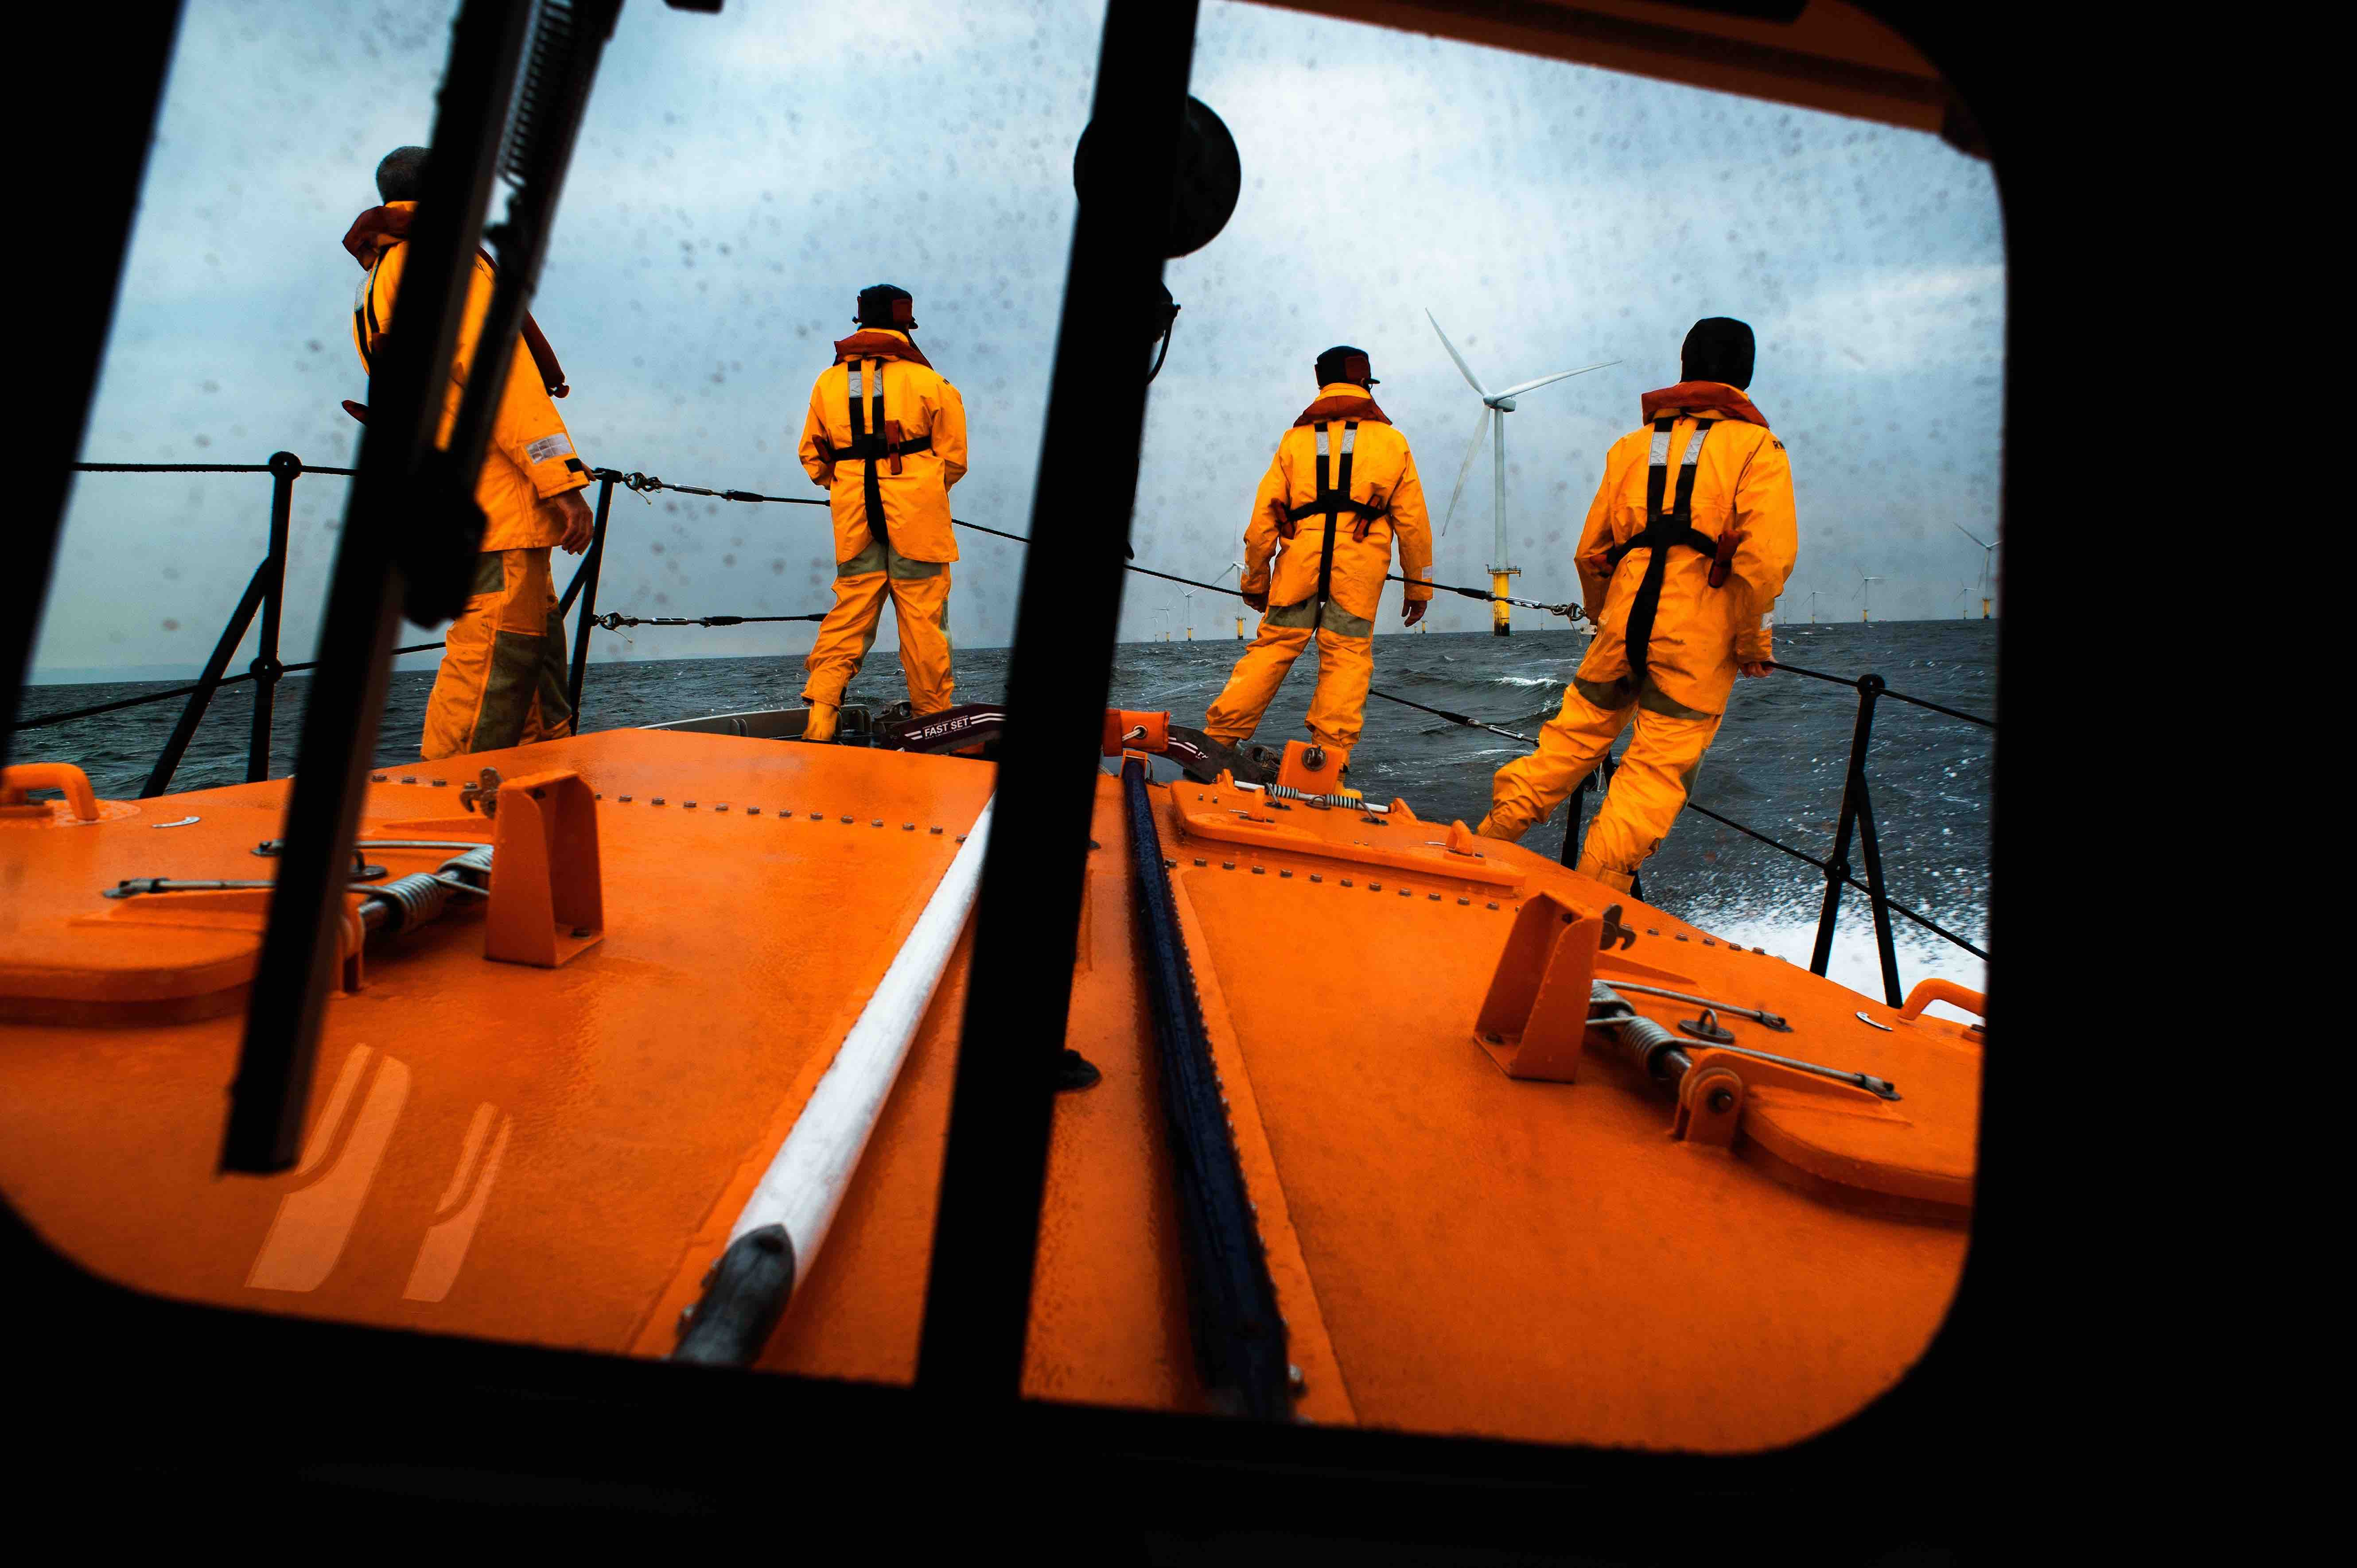 The view from the wheelhouse of the Hoylake Mersey class lifeboat Lady of Hilbre 12-005, as the crew search for a casualty in the water near the North Hoyle wind farm. Taken from The Lifeboat: Courage on our Coasts. Page 36.